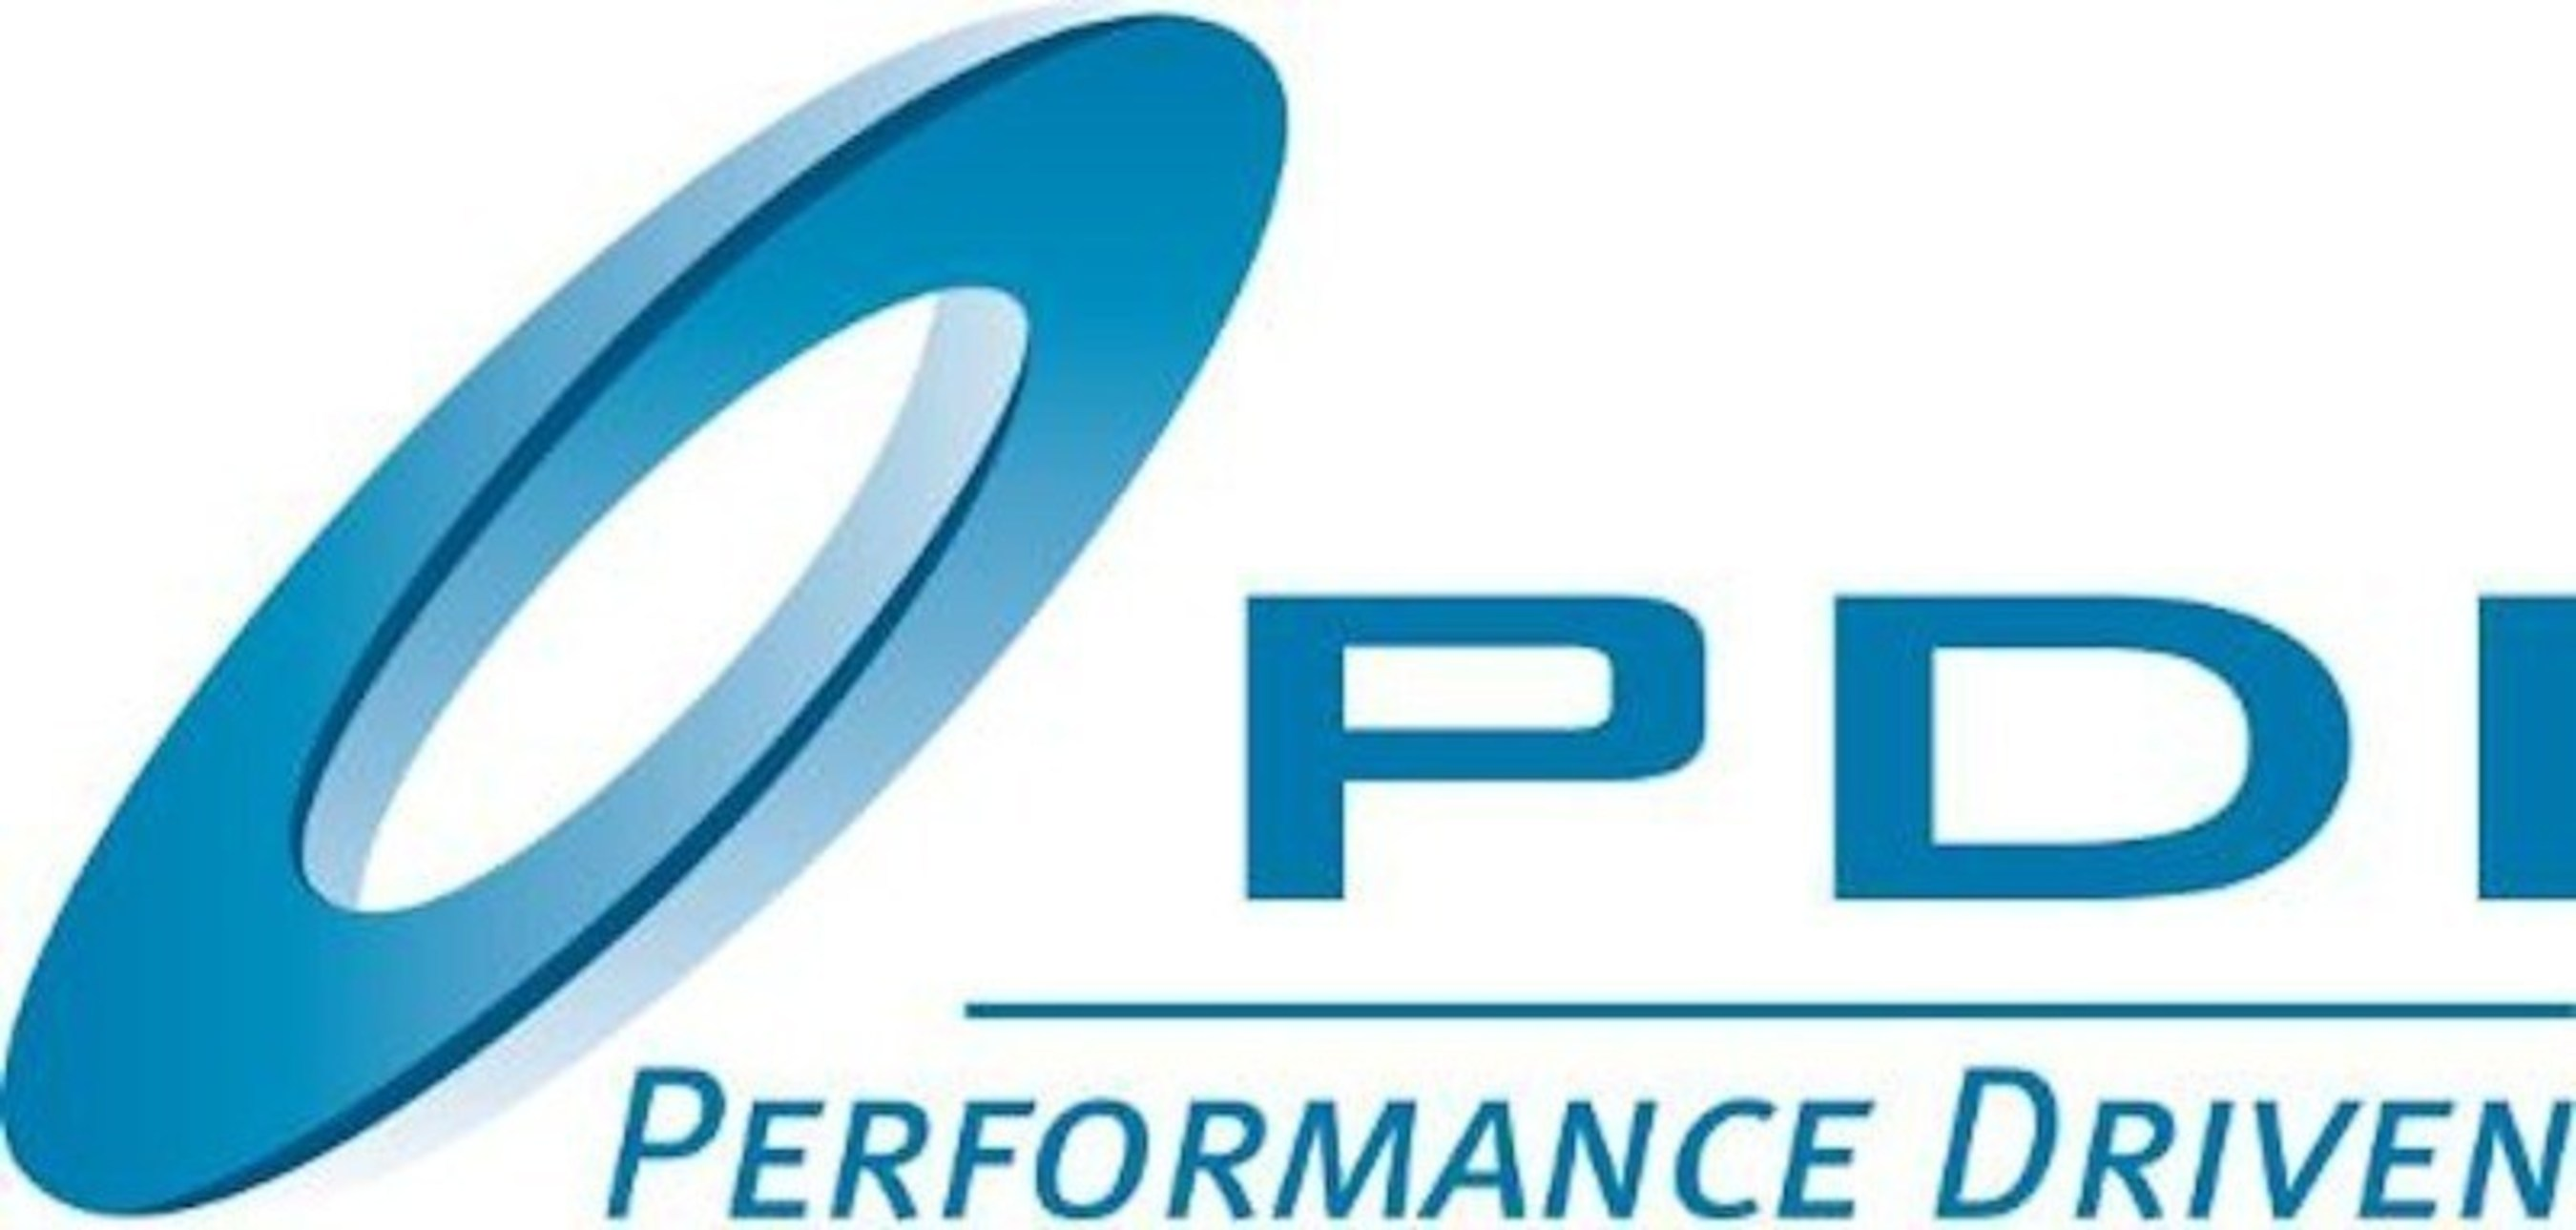 PDI is a leading health care commercialization company providing superior insight-driven, integrated multi-channel message delivery to established and emerging health care companies. The company is dedicated to enhancing engagement with health care practitioners and optimizing commercial investments for its clients by providing strategic flexibility, full product commercialization services, innovative multi-channel promotional solutions, and sales and marketing expertise.